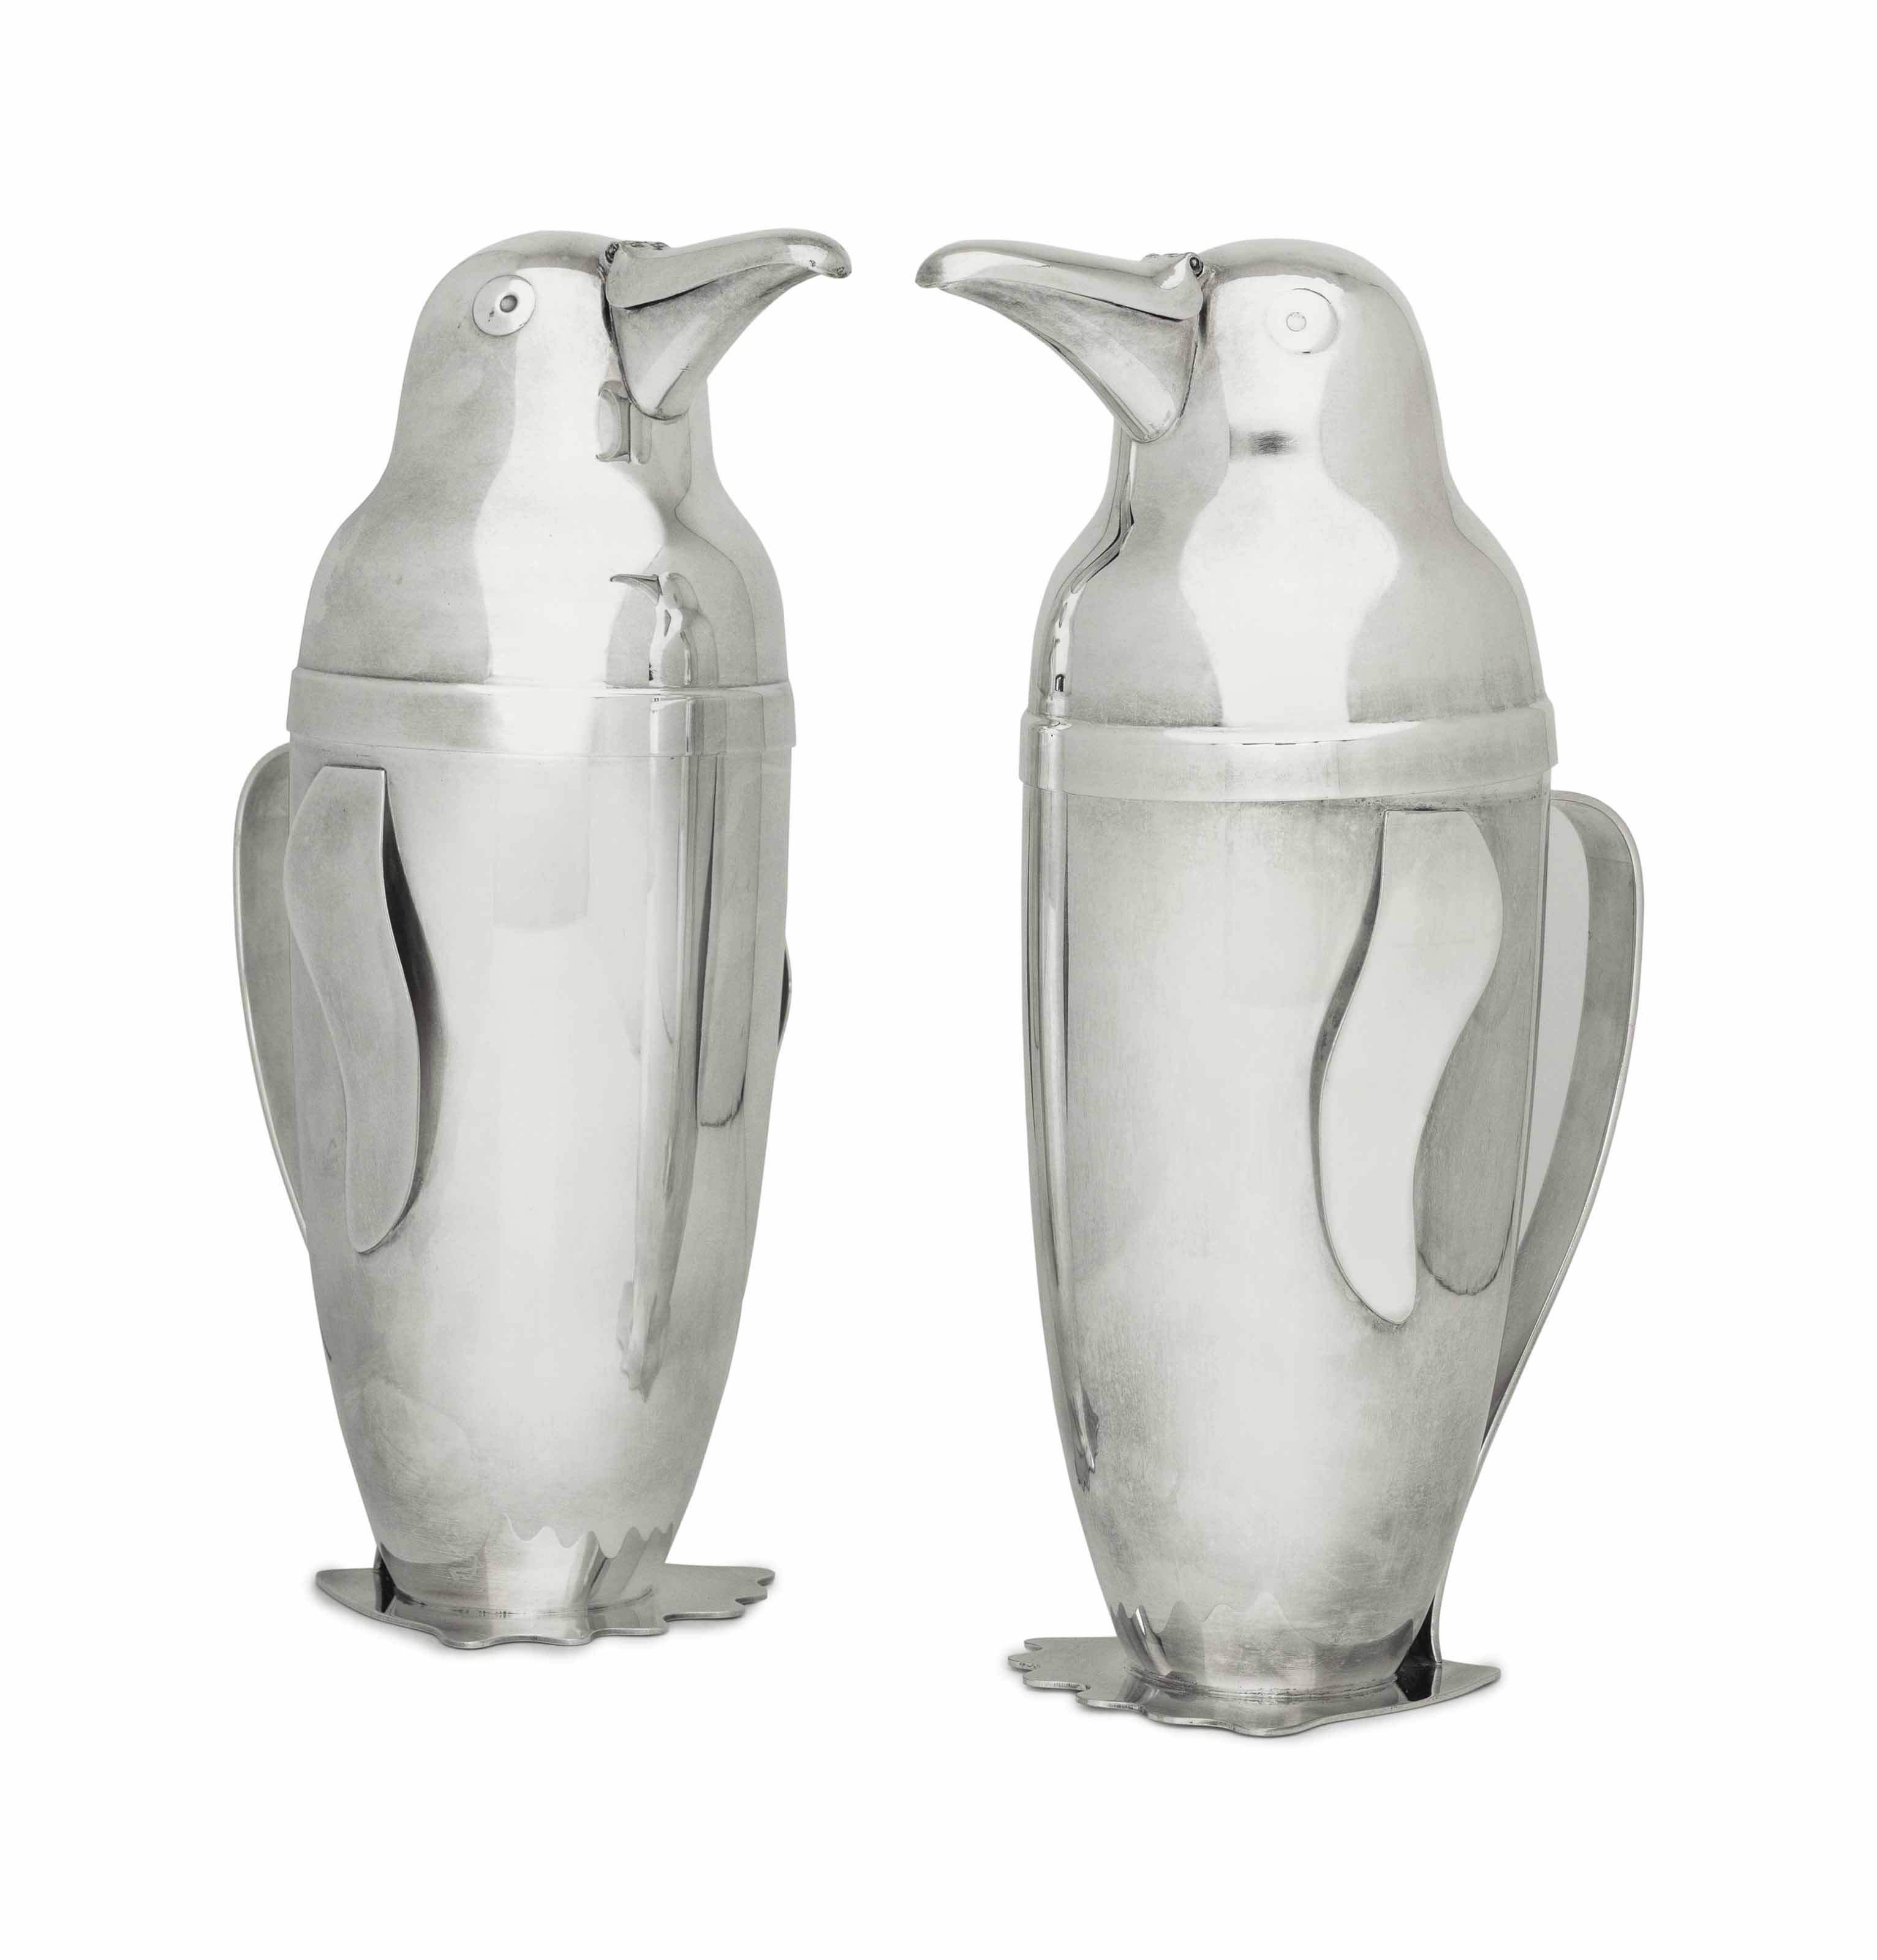 A PAIR OF AMERICAN SILVER PLATE PENGUIN-FORM COCKTAIL SHAKERS